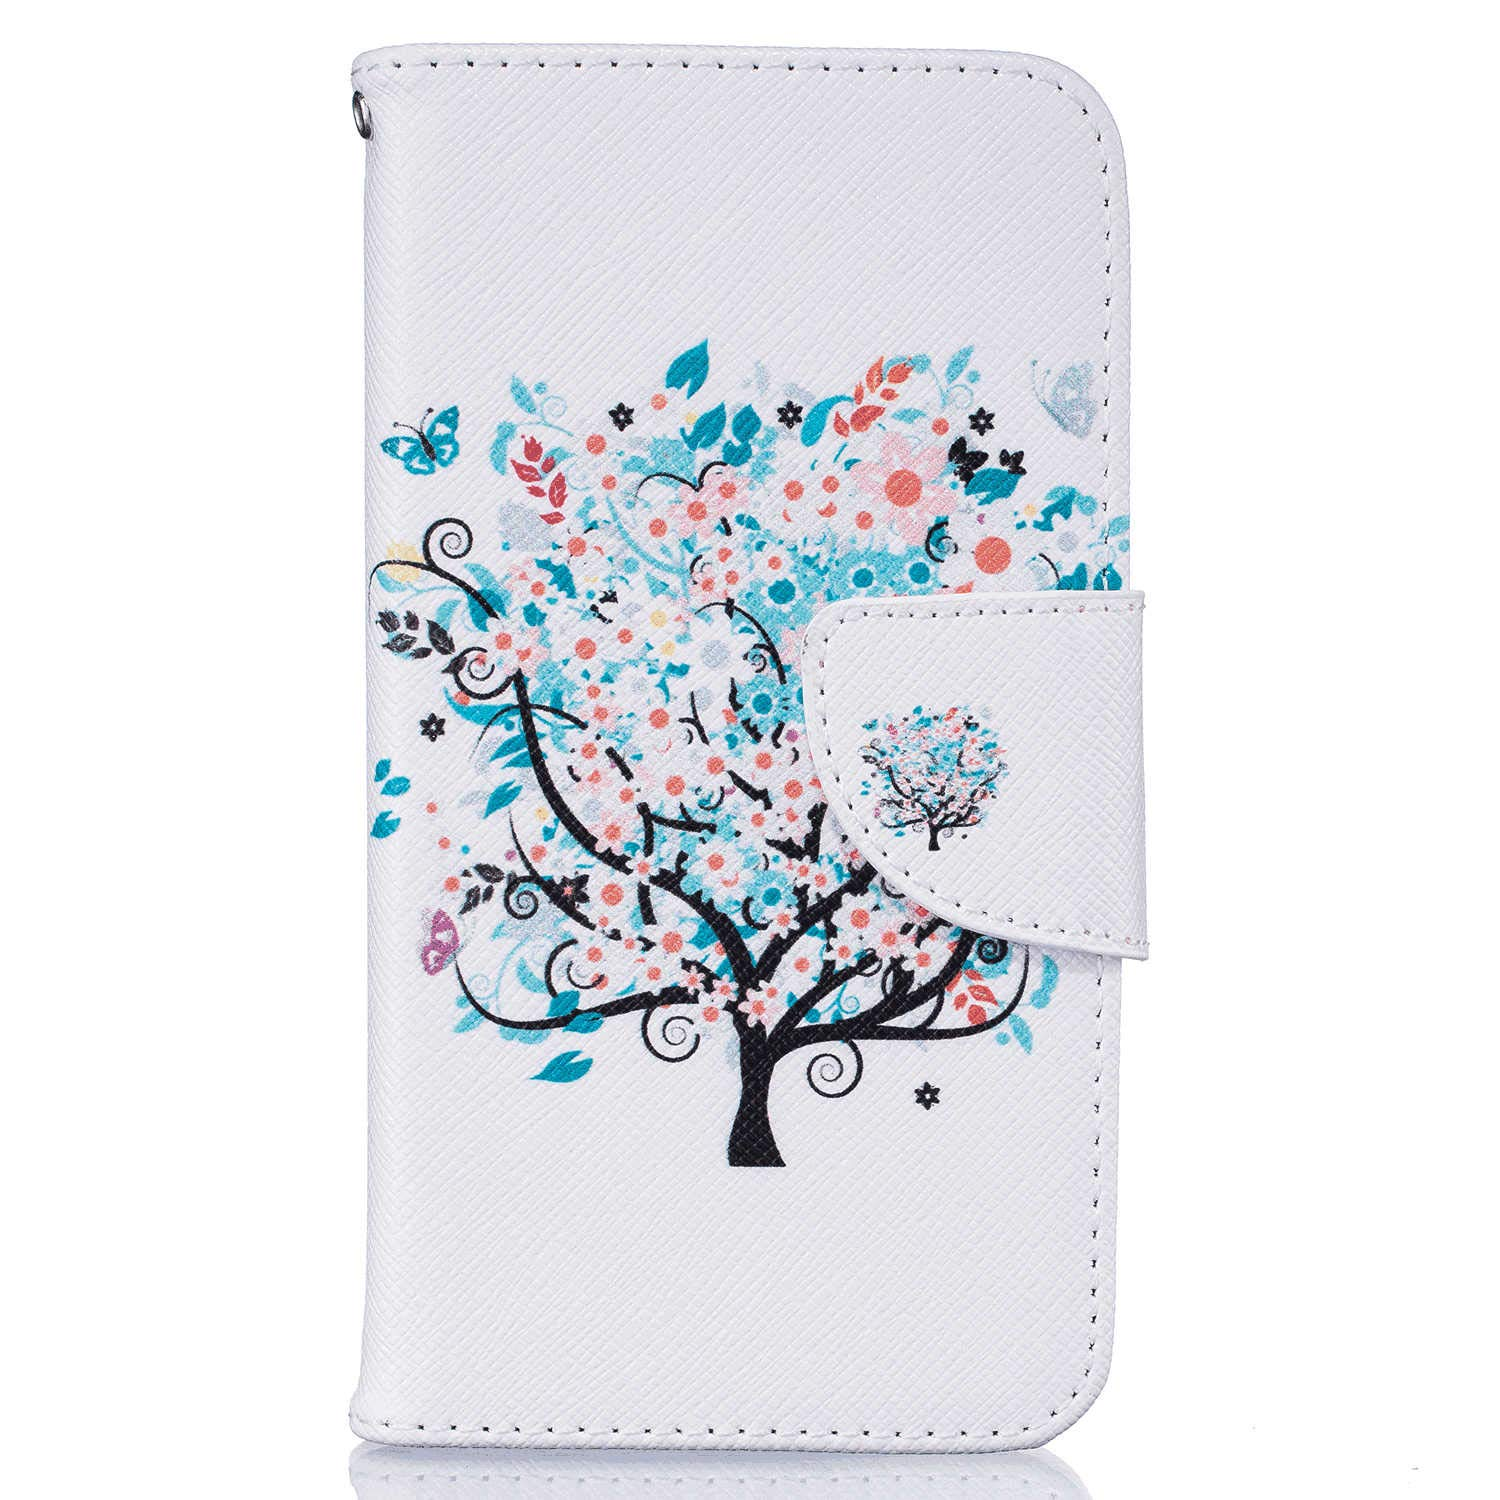 iPhone 8 Plus Flip Case Cover for iPhone 8 Plus Leather Cell Phone Cover Extra-Durable Business Kickstand Card Holders with Free Waterproof-Bag Gripping